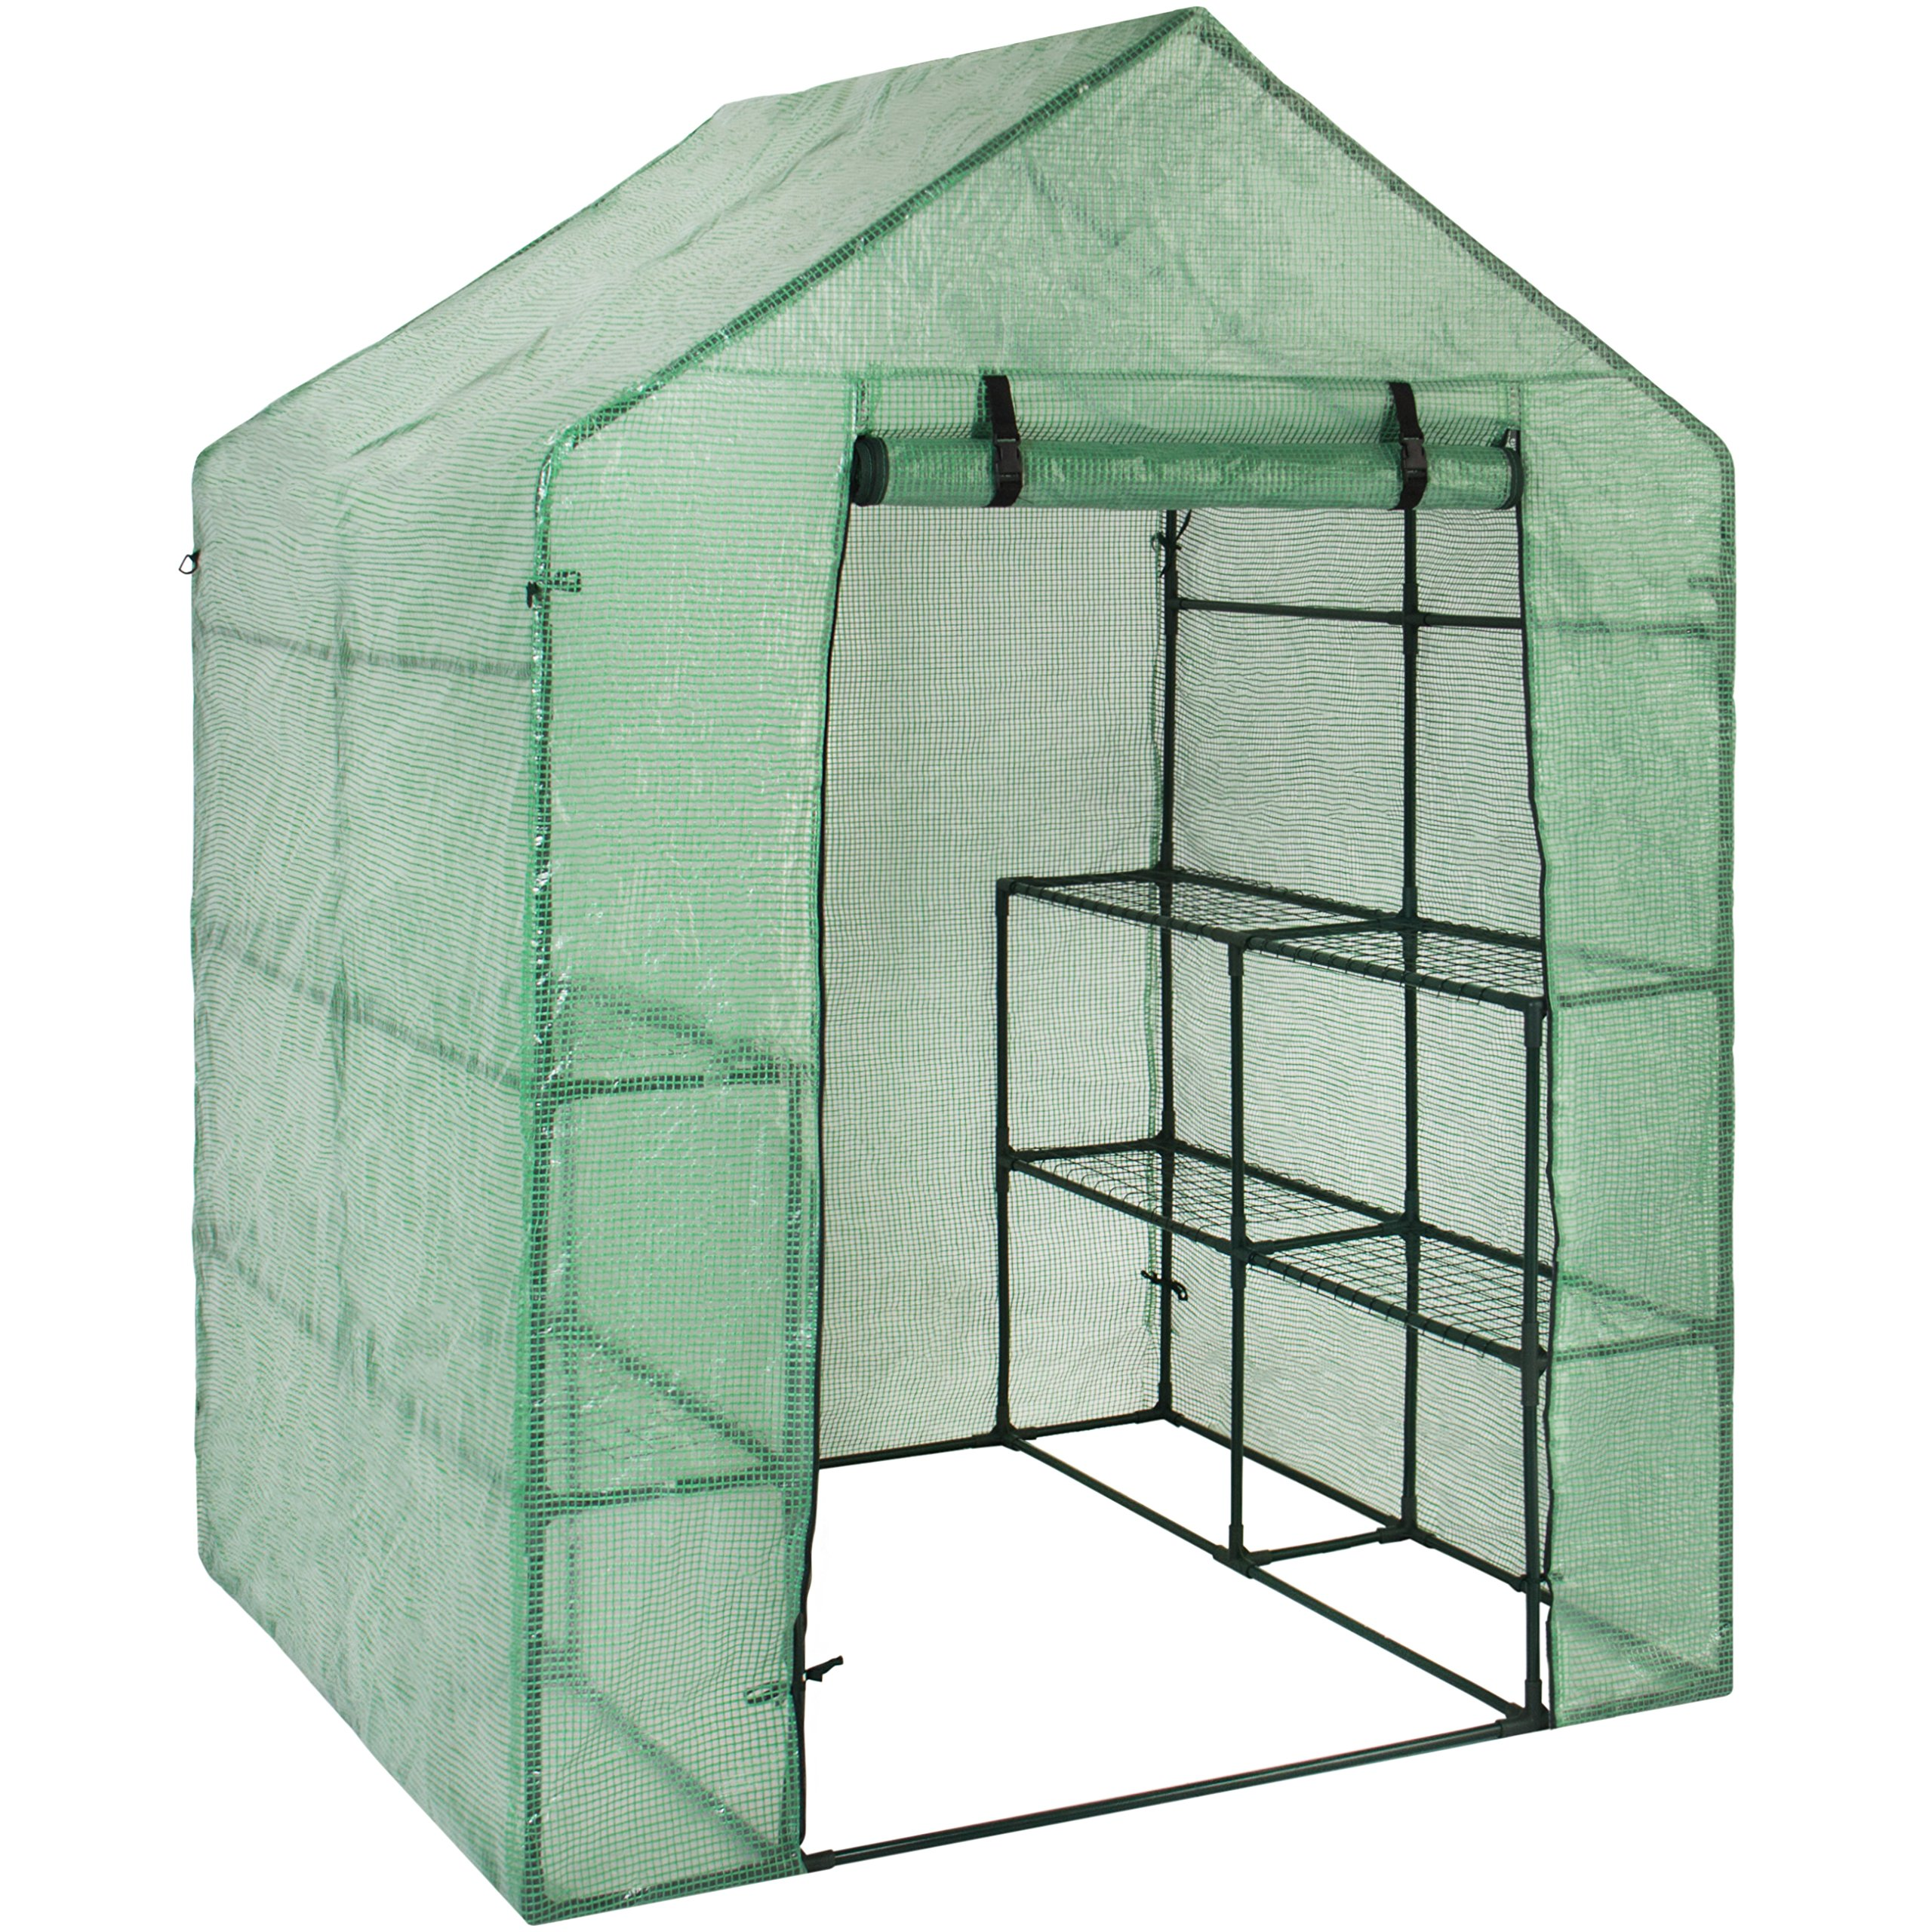 Best Choice Products 3-Tier 8-Shelf Portable Outdoor Mini Garden Walk-In Greenhouse, 57.5'' L x 56'' W x 76'' H - Green